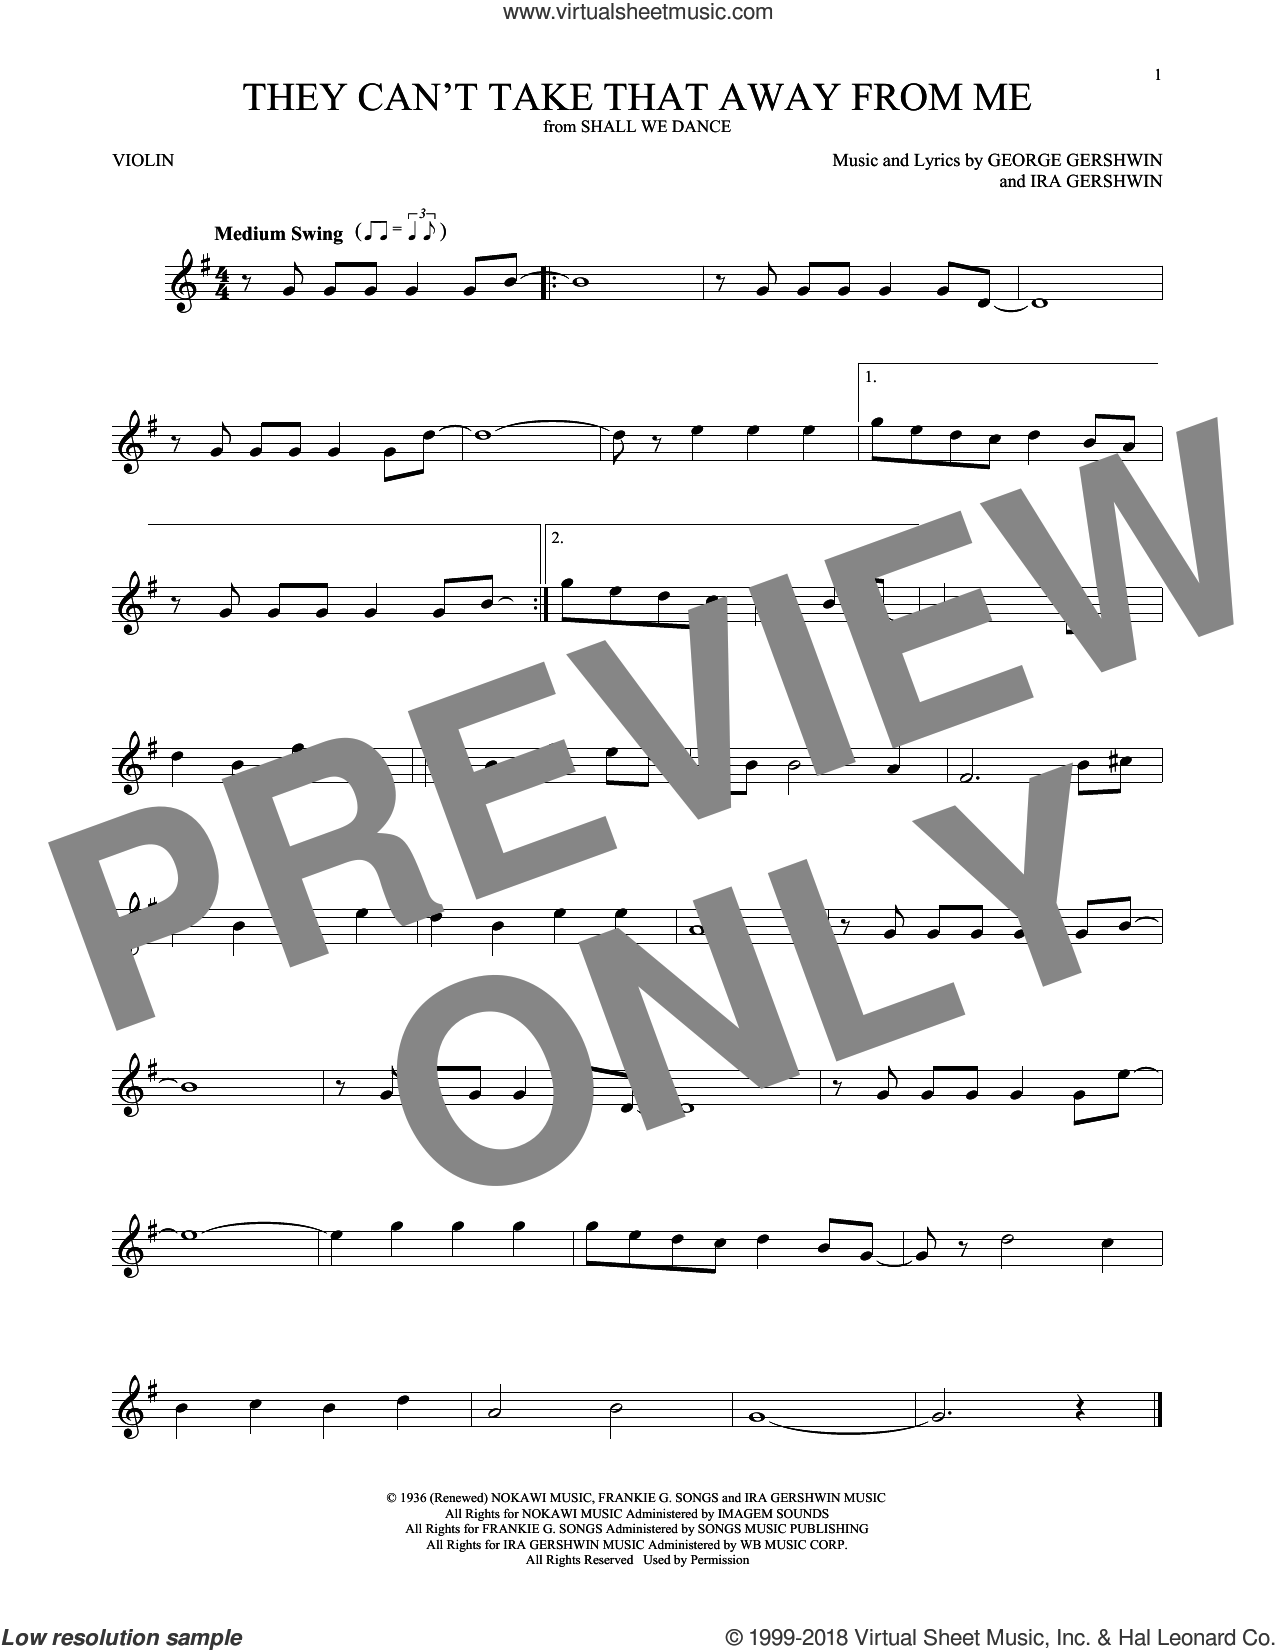 They Can't Take That Away From Me sheet music for violin solo by Frank Sinatra, George Gershwin and Ira Gershwin, intermediate skill level